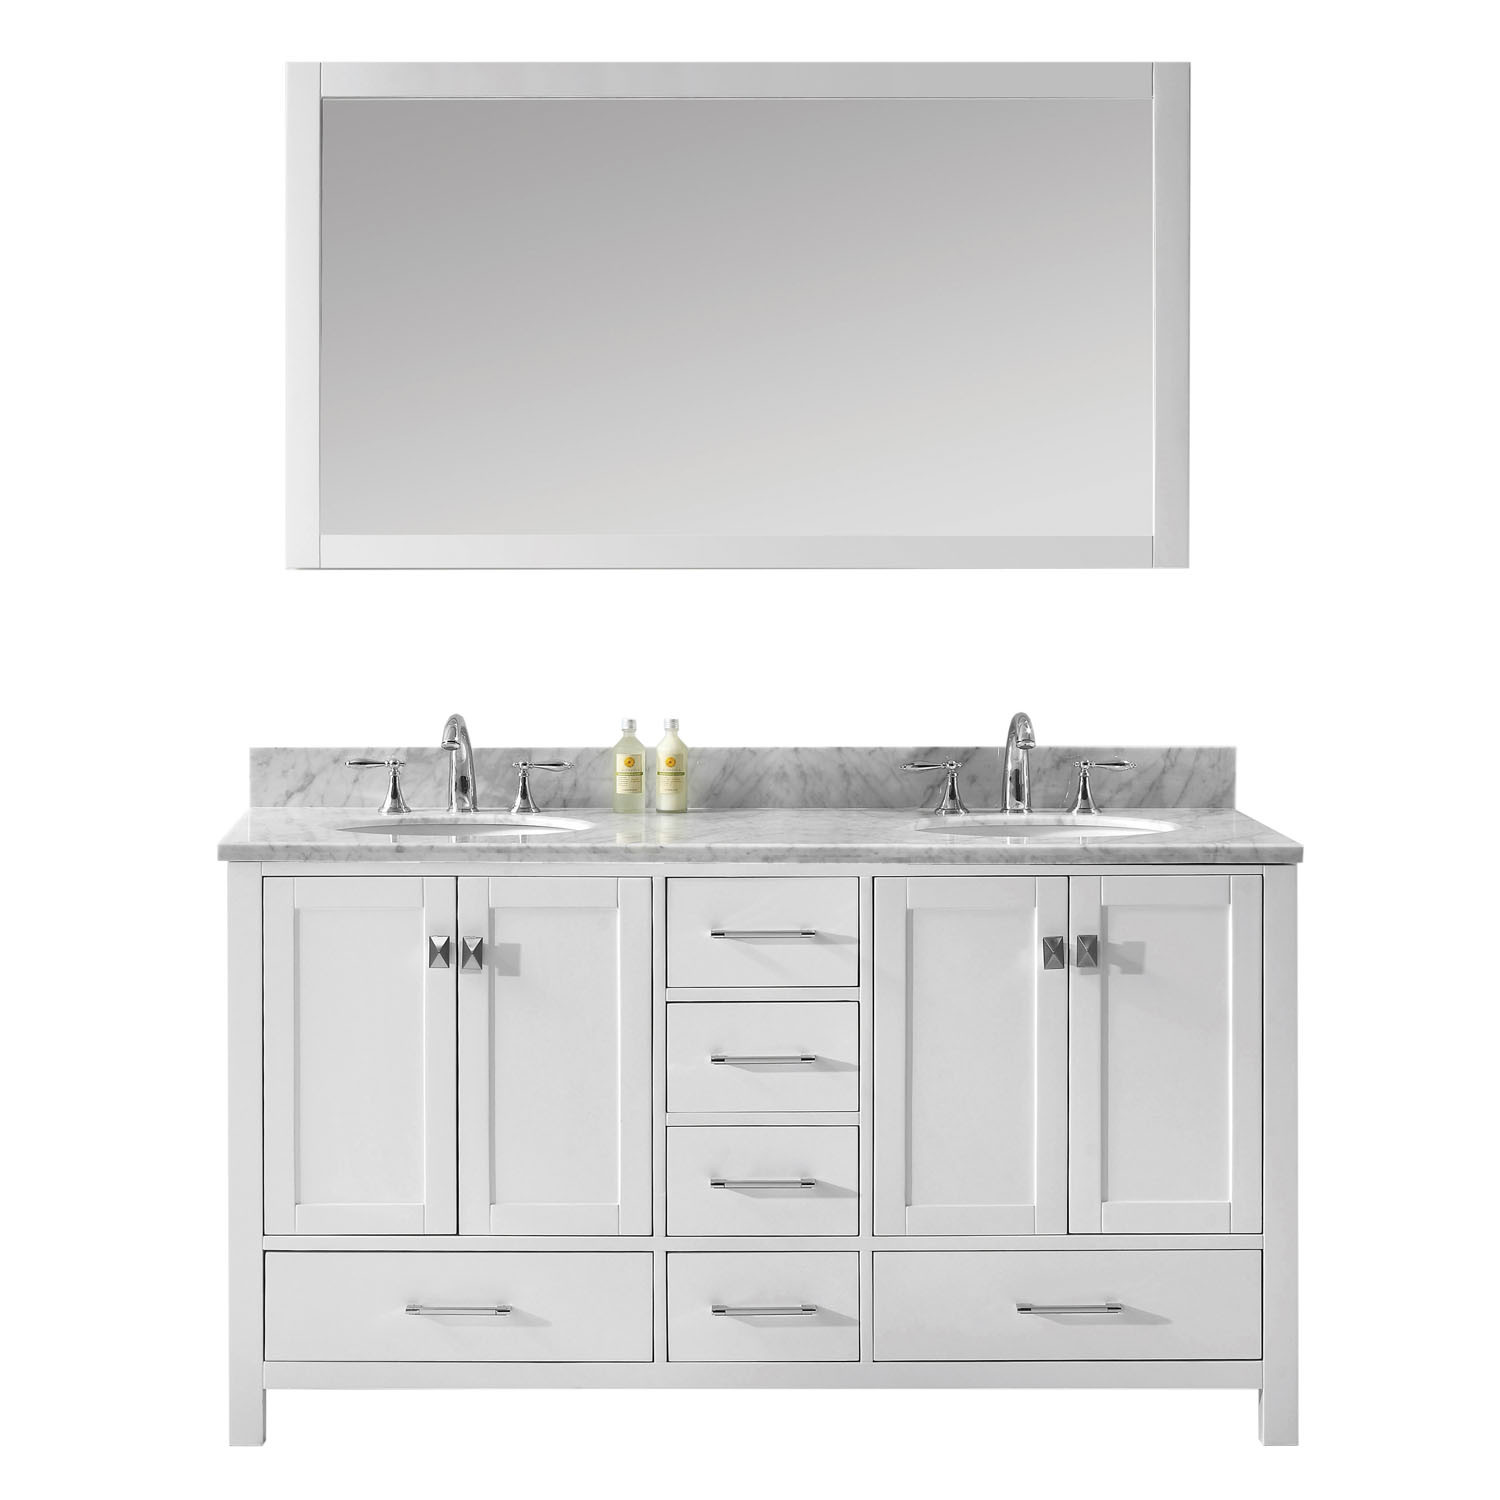 Virtu GD-50060-GQRO-WH Caroline Avenue 60 Inch Double Bathroom Vanity Set In White (Image shown with Marble Top)